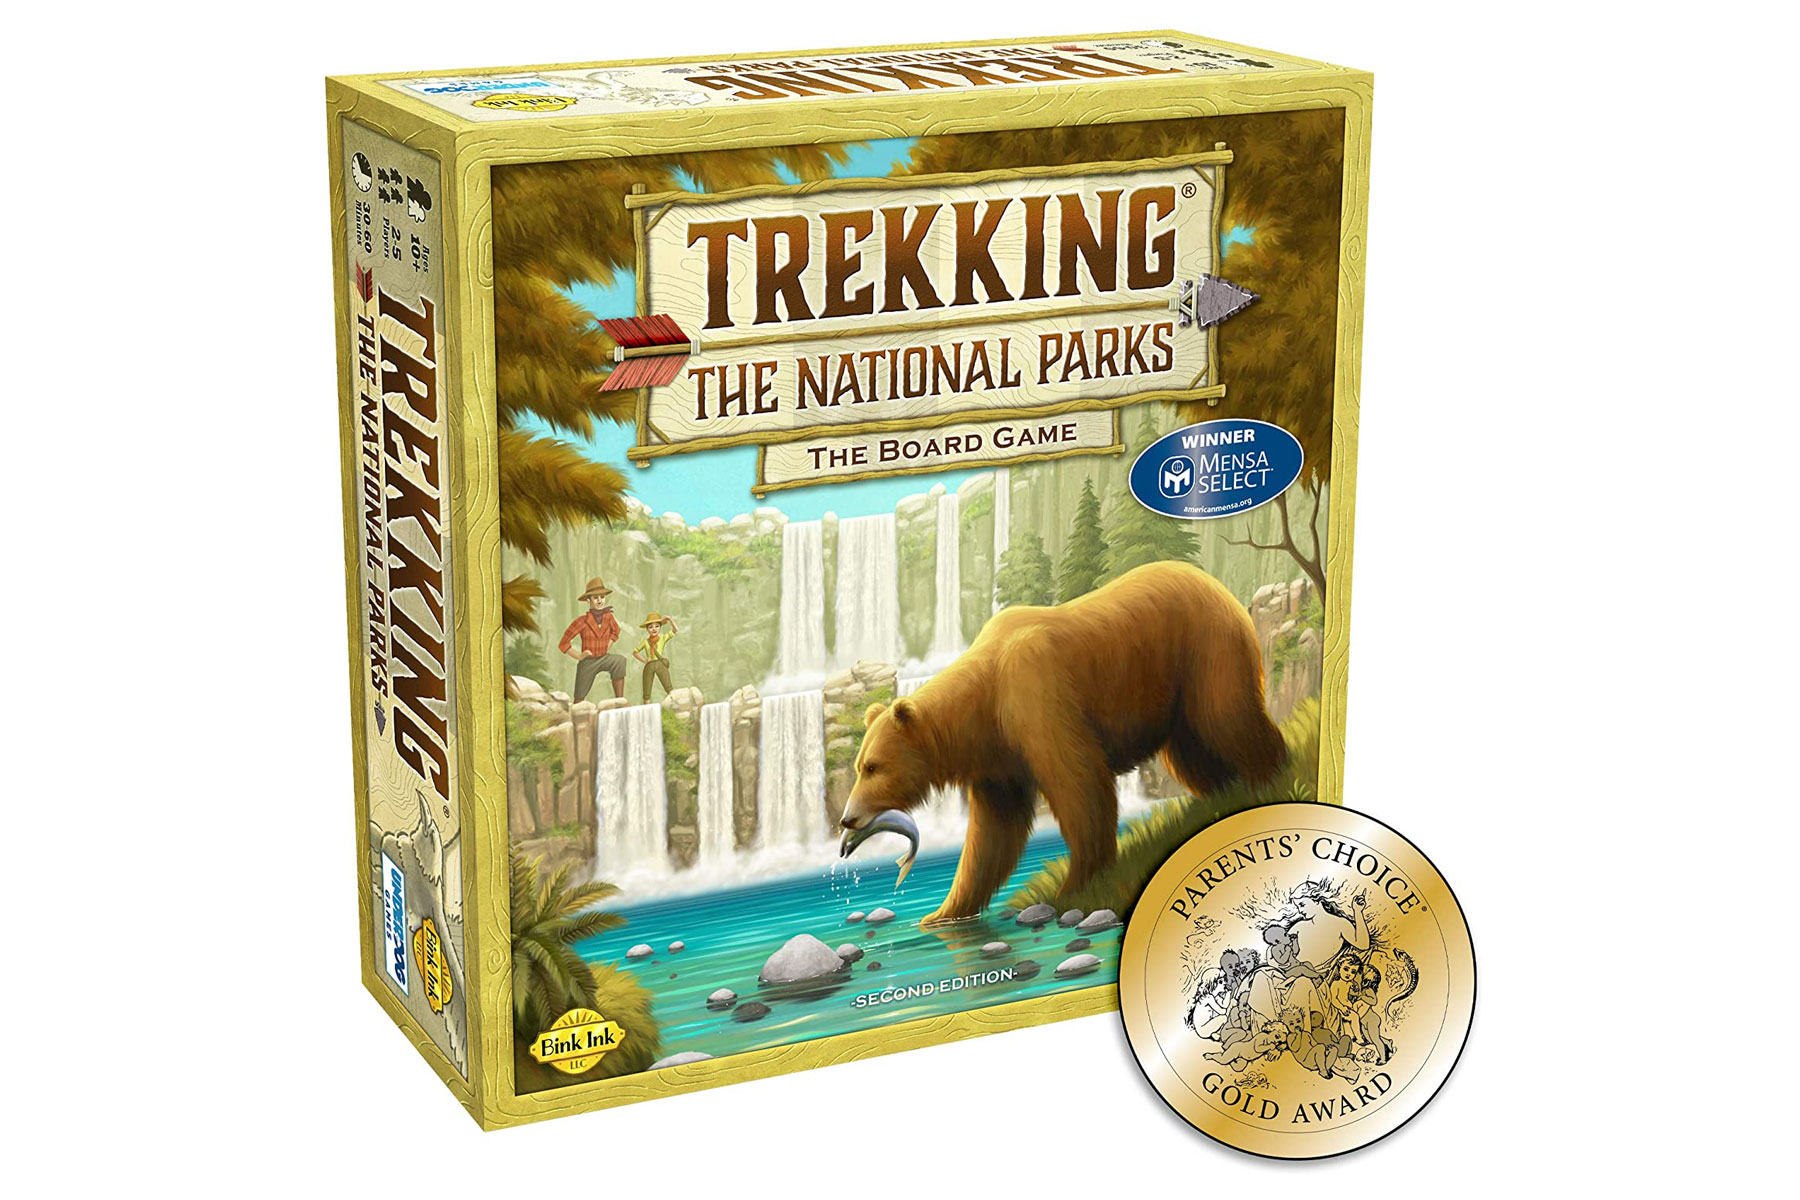 Trekking the National Parks game